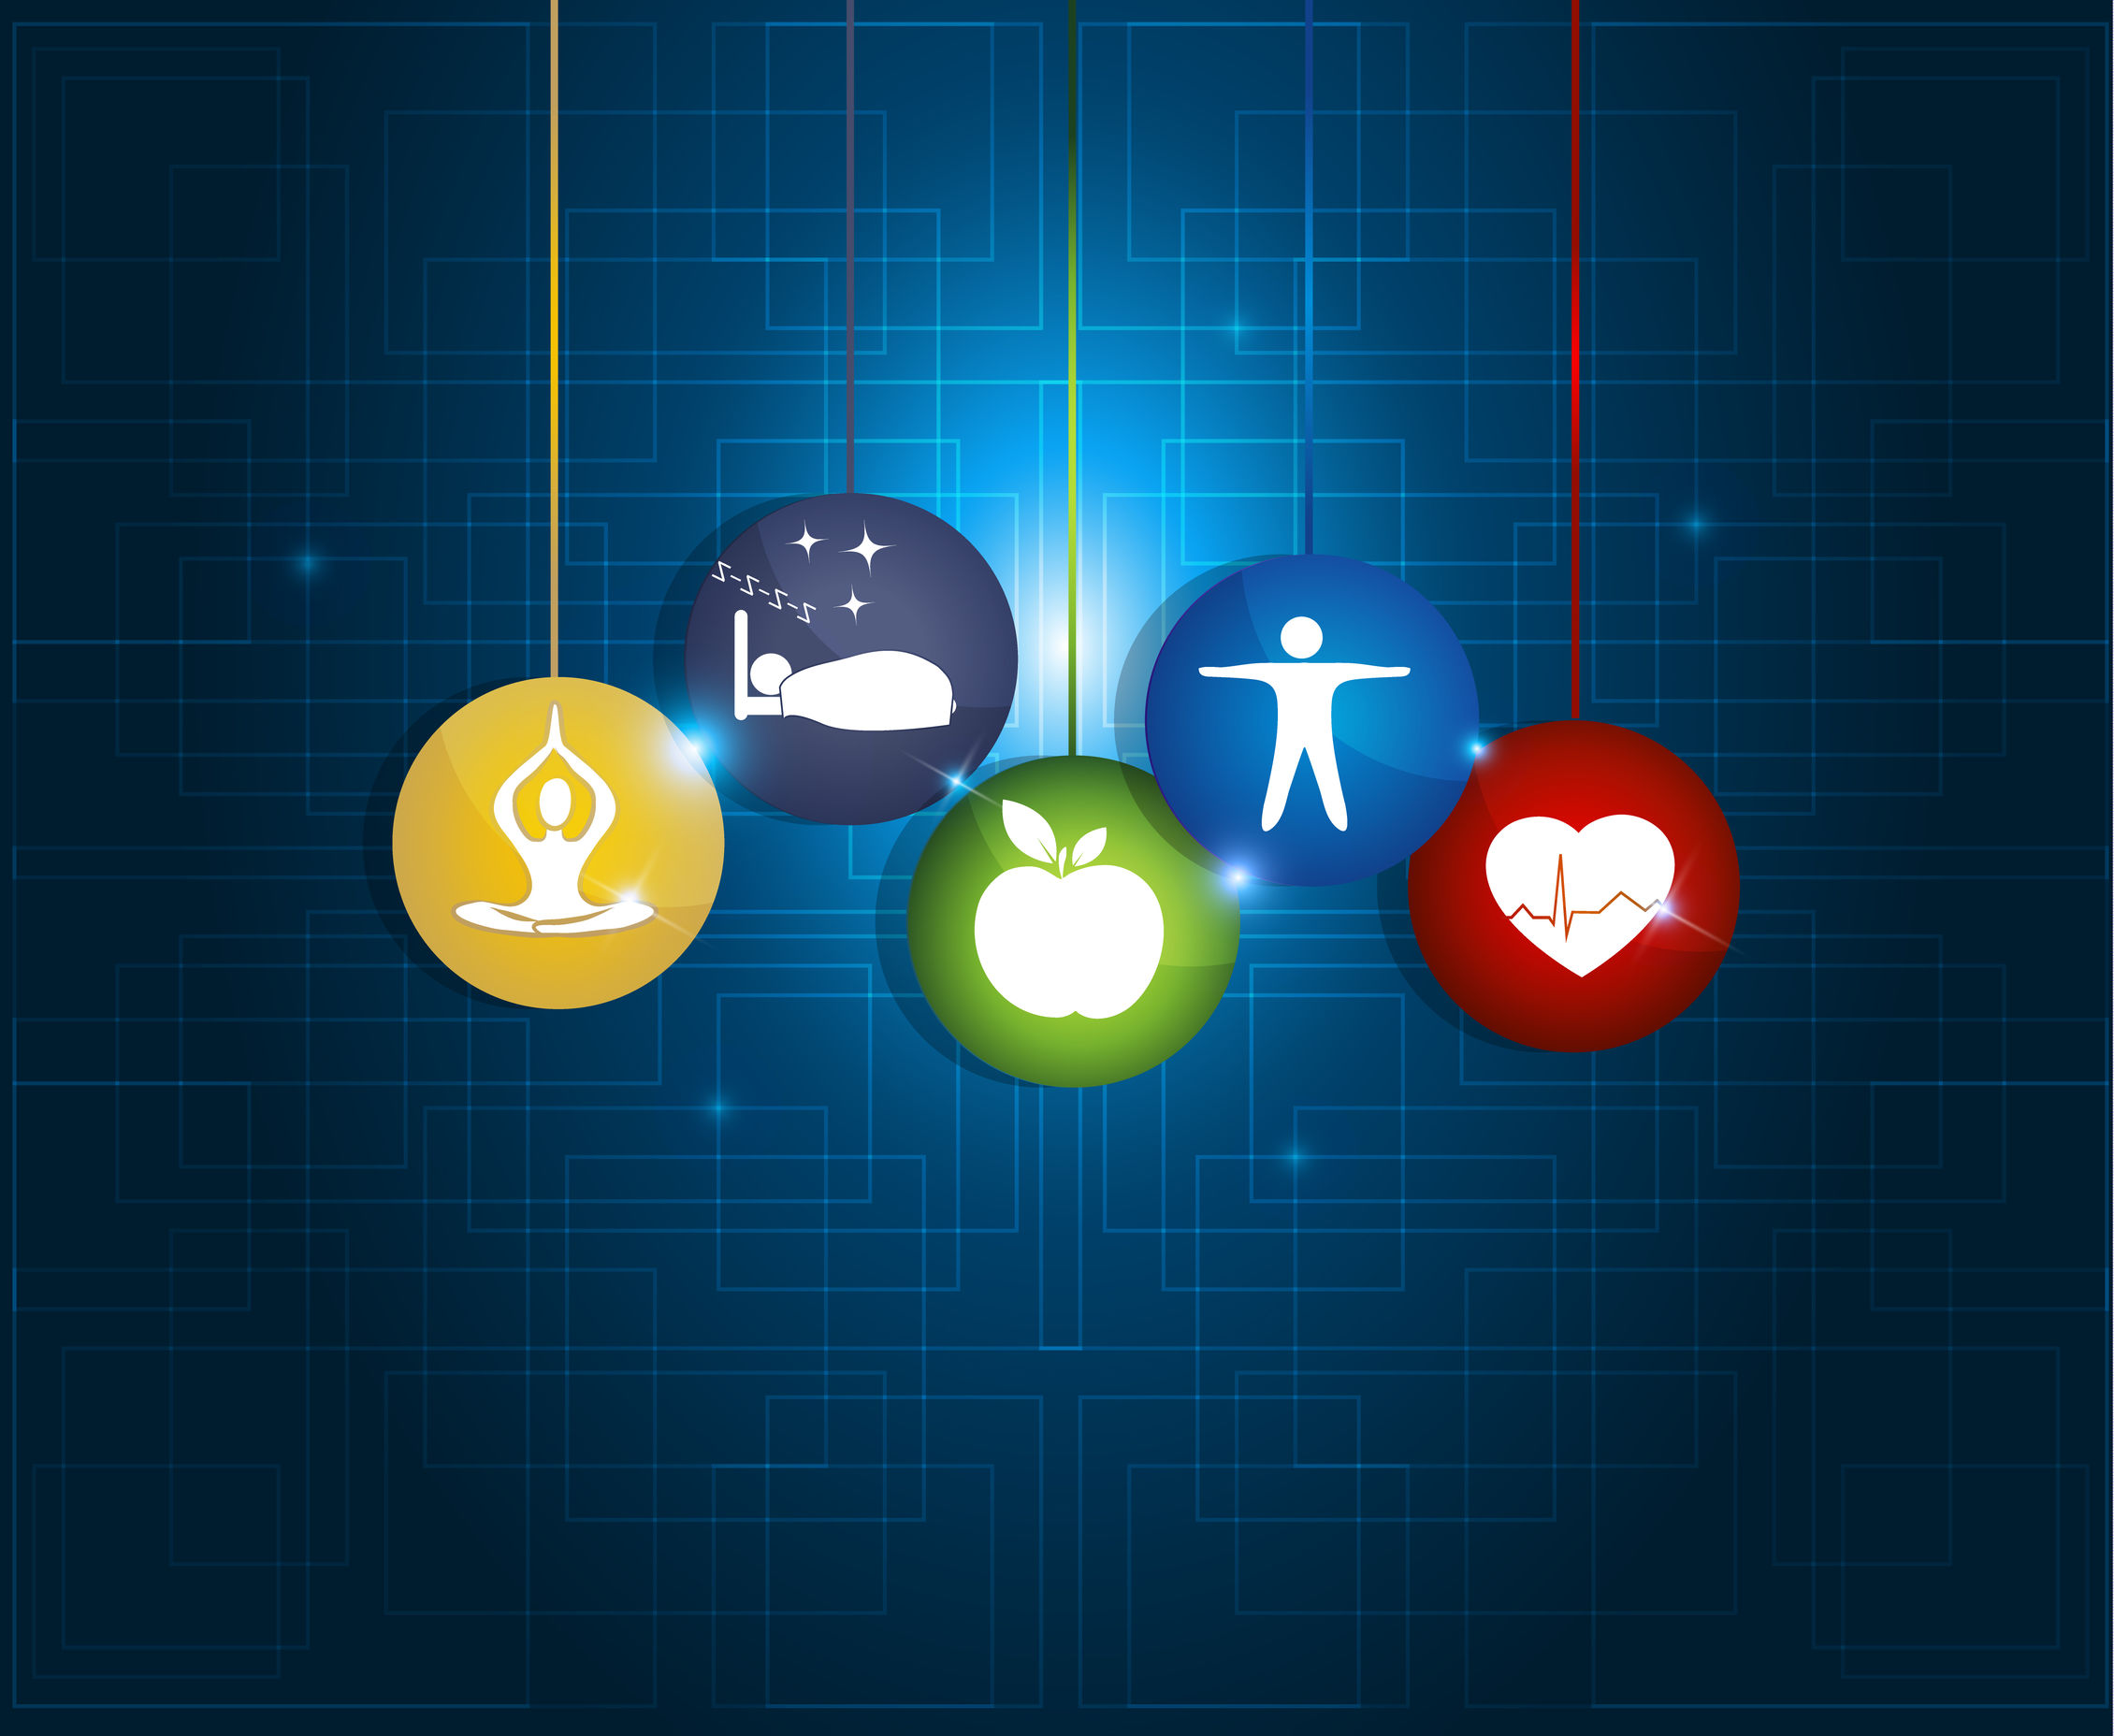 Healthy living round symbols. Healthy food, fitness, no stress and healthy weight leads to healthy heart and life.